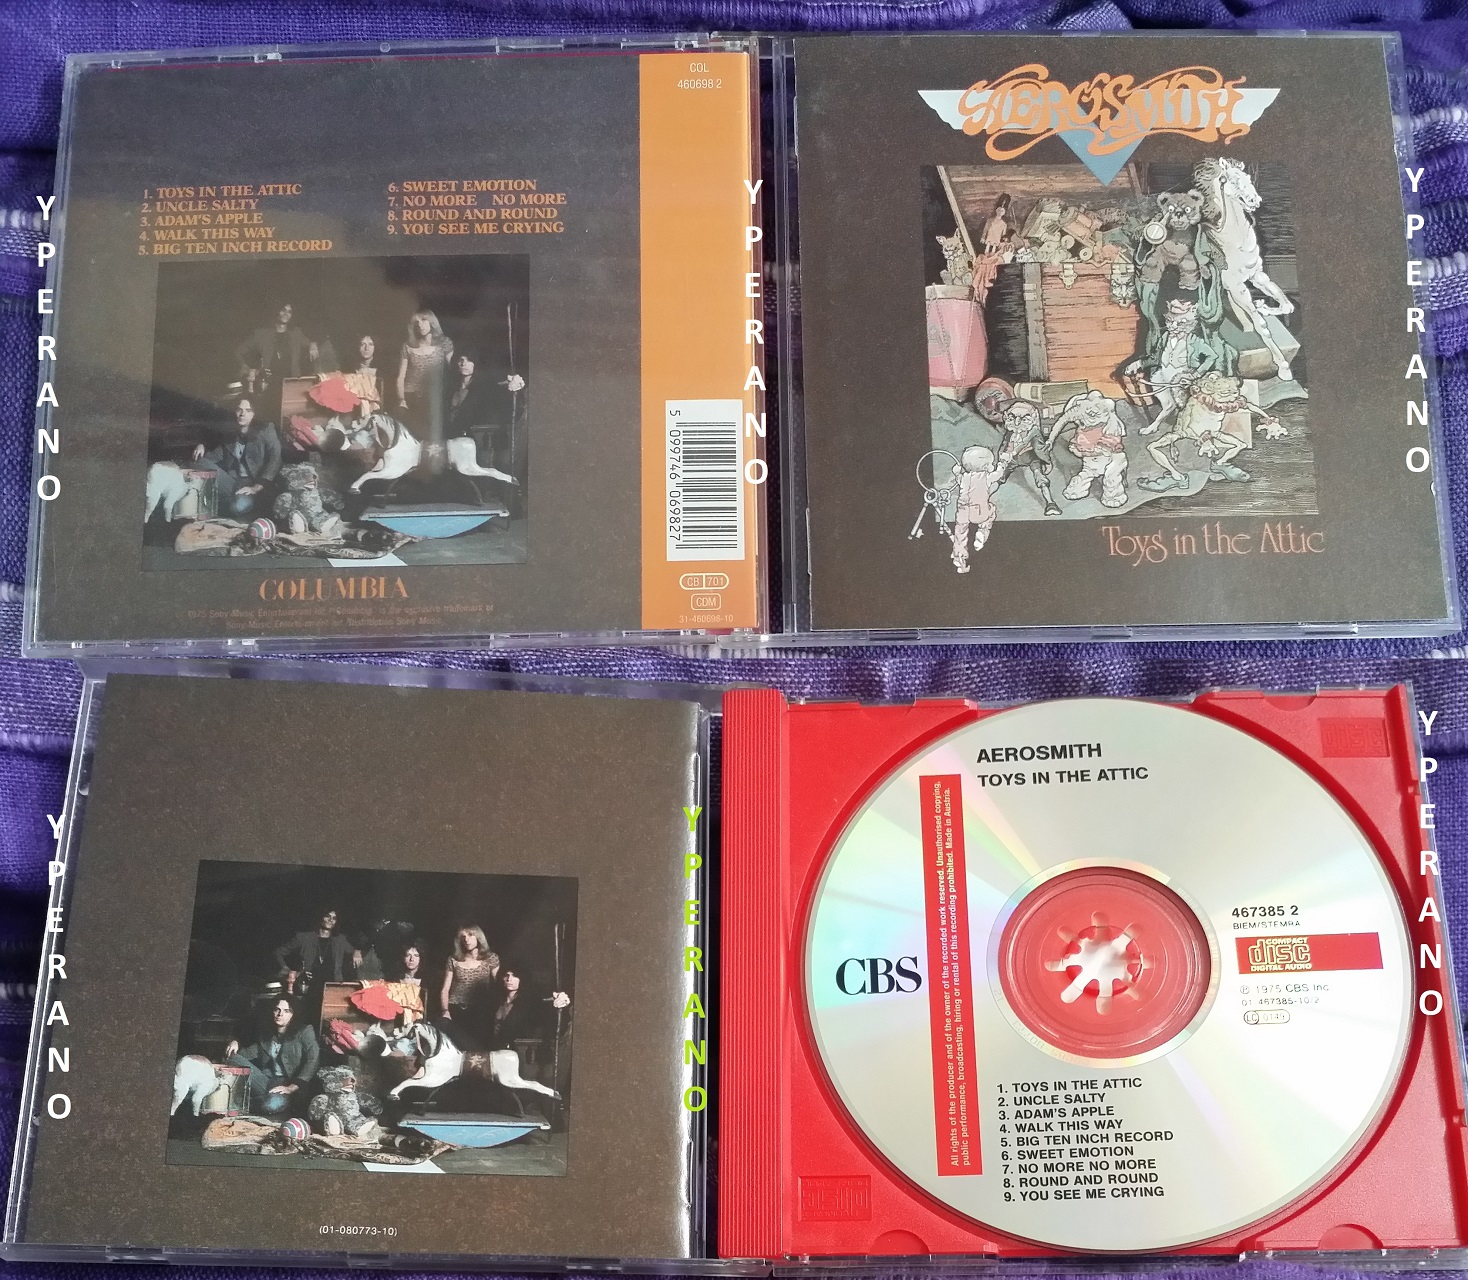 Aerosmith Toys In The Attic Cd Every Single Song Is